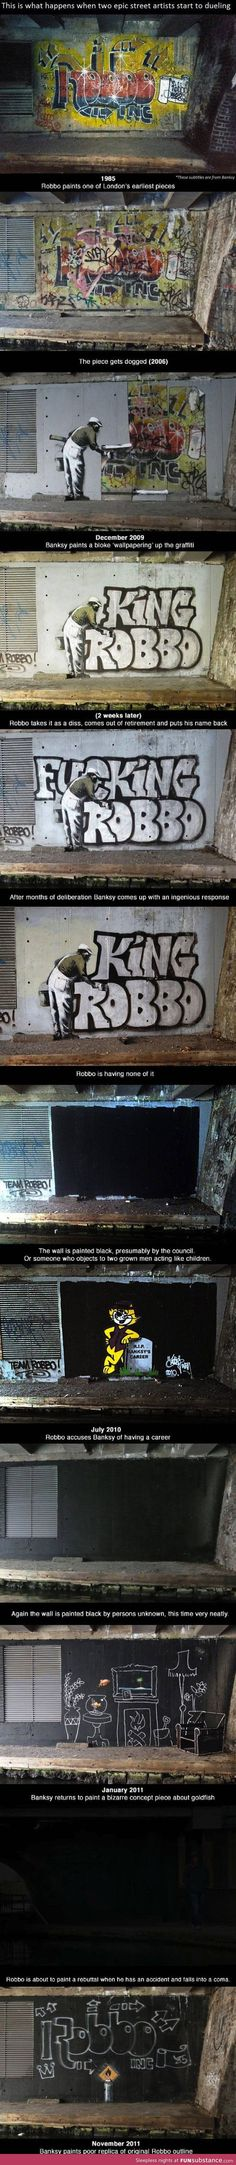 When Two Graffiti Artists Duel